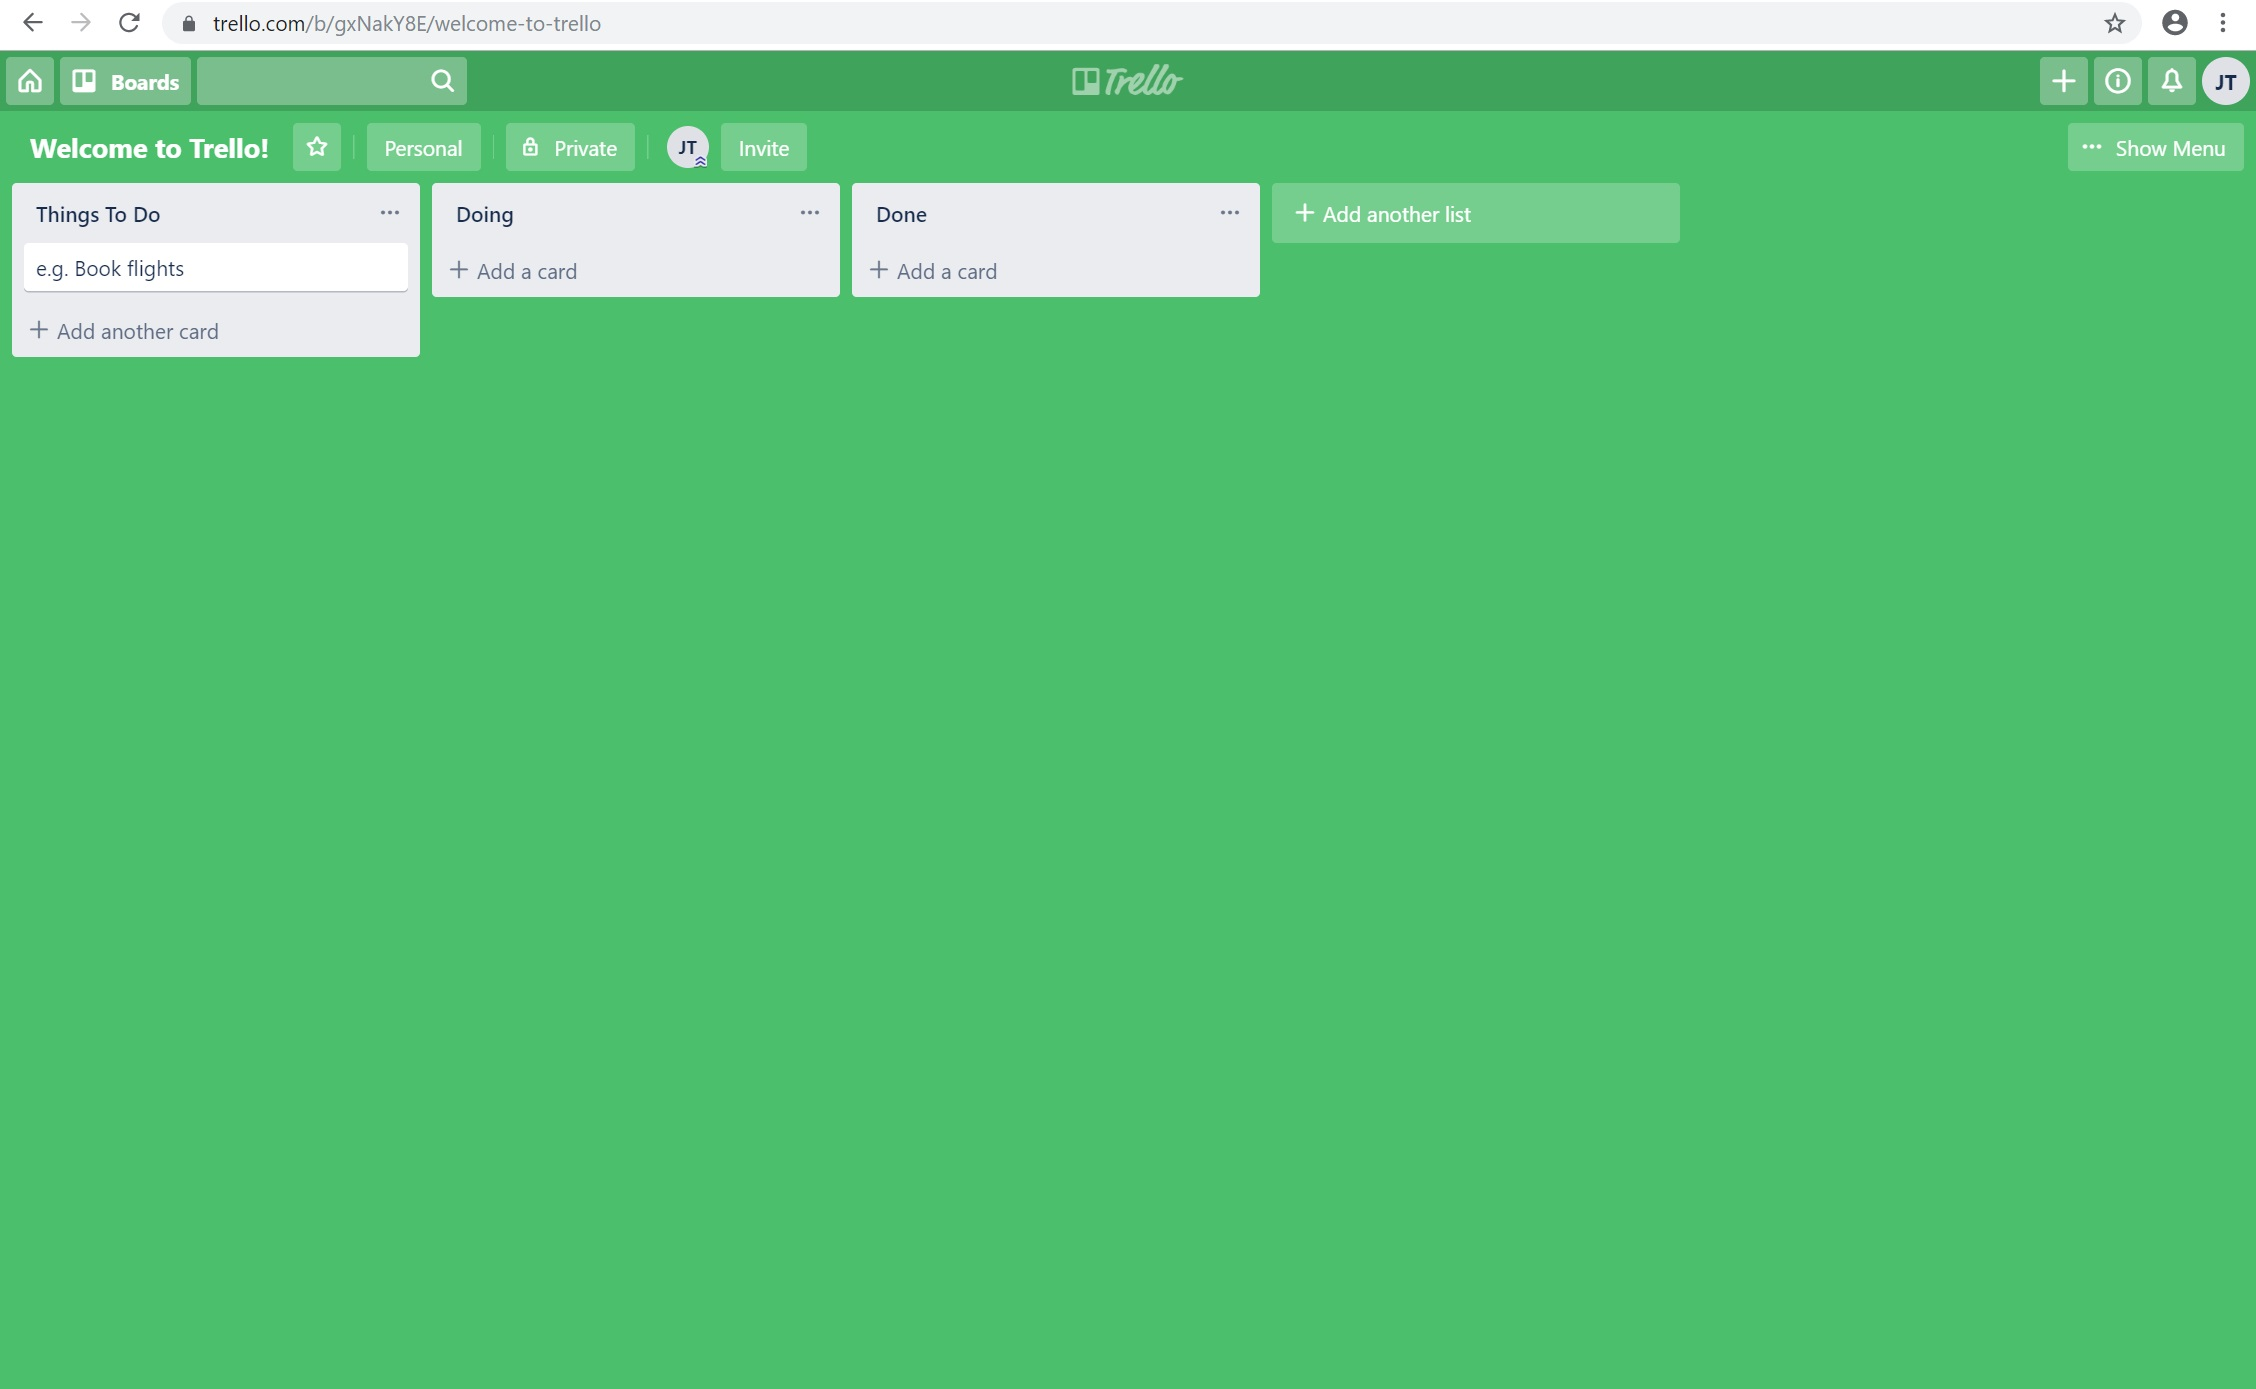 [Video] Using Trello for Projects